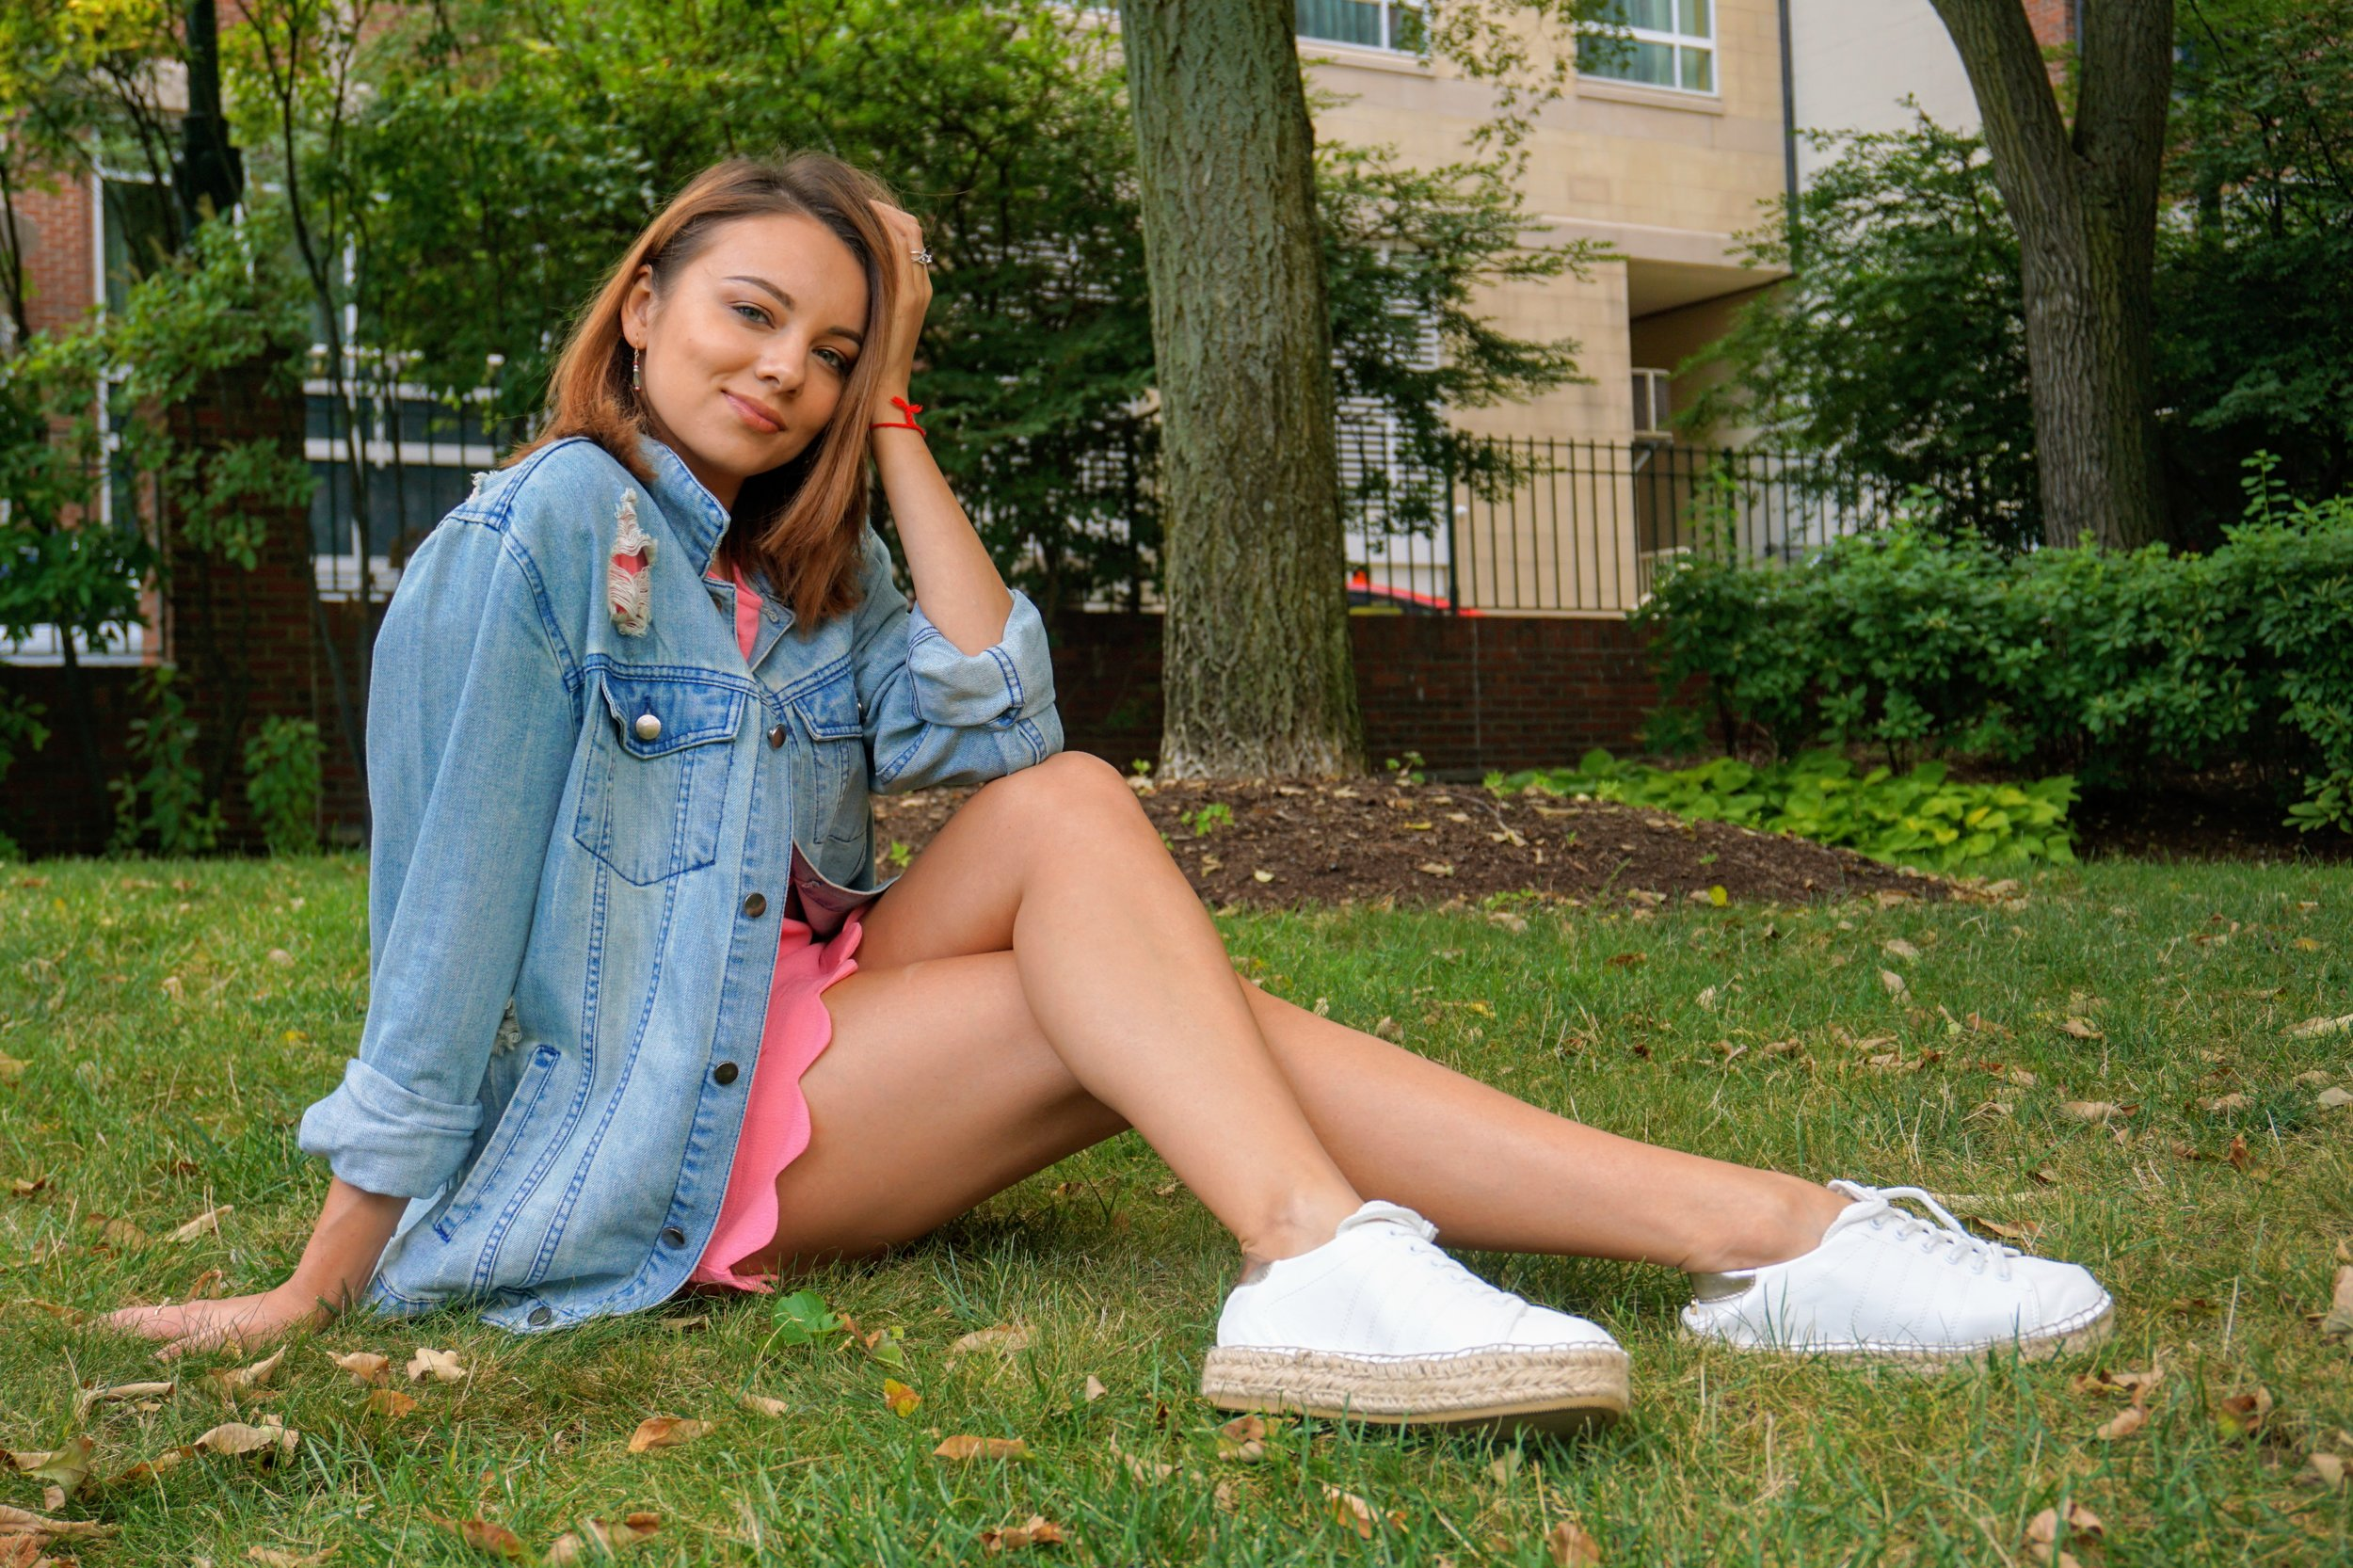 A fashion blogger sitting on the grass, wearing a pink short dress, blue denim oversized jacket and white sneakers.